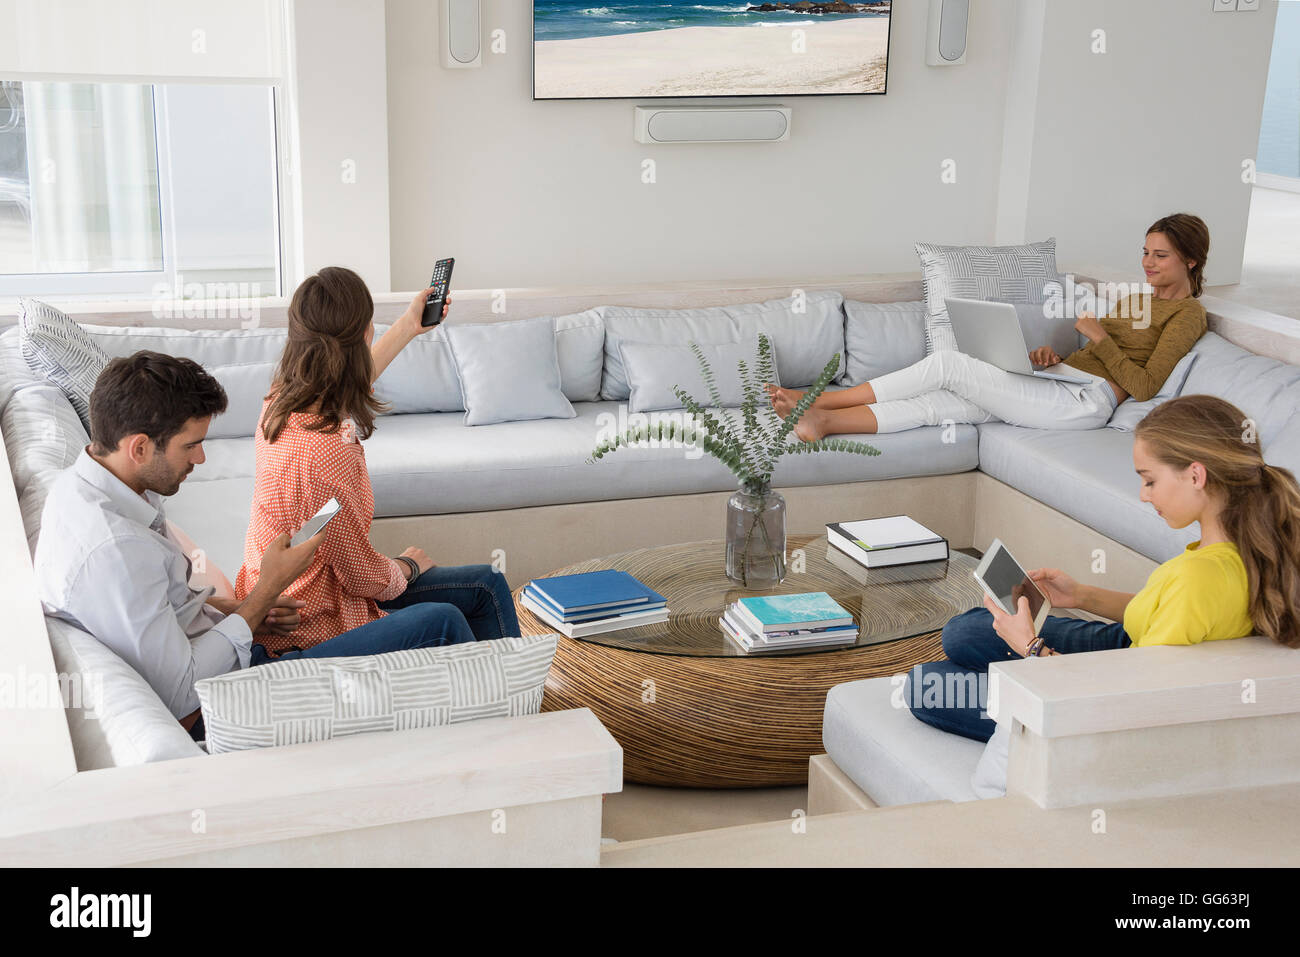 Family in living room busy in different activities Stock ...